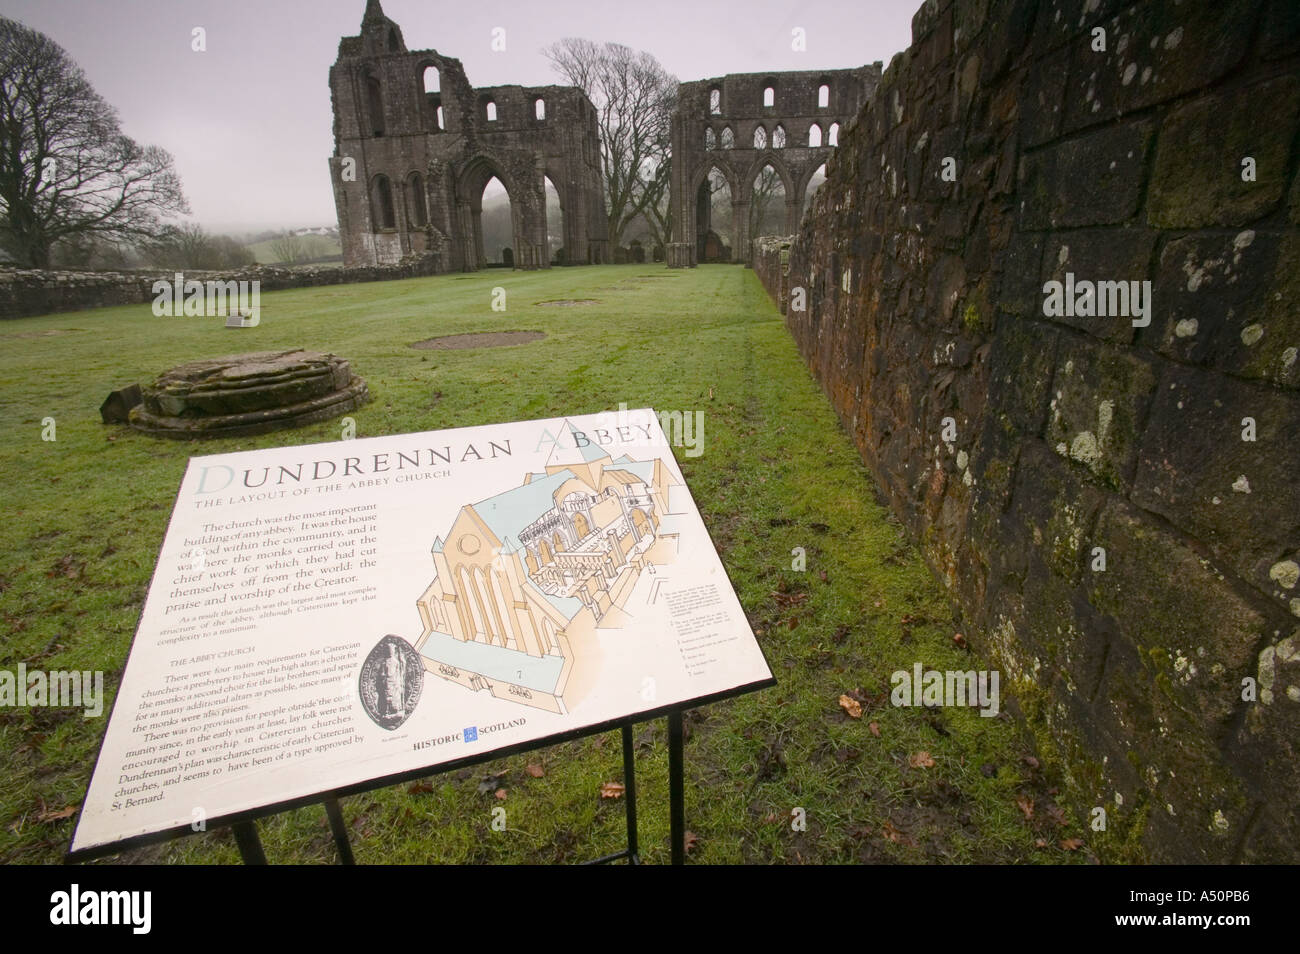 Dundrennan Abbey in Dumfrieshire Scotland - Stock Image